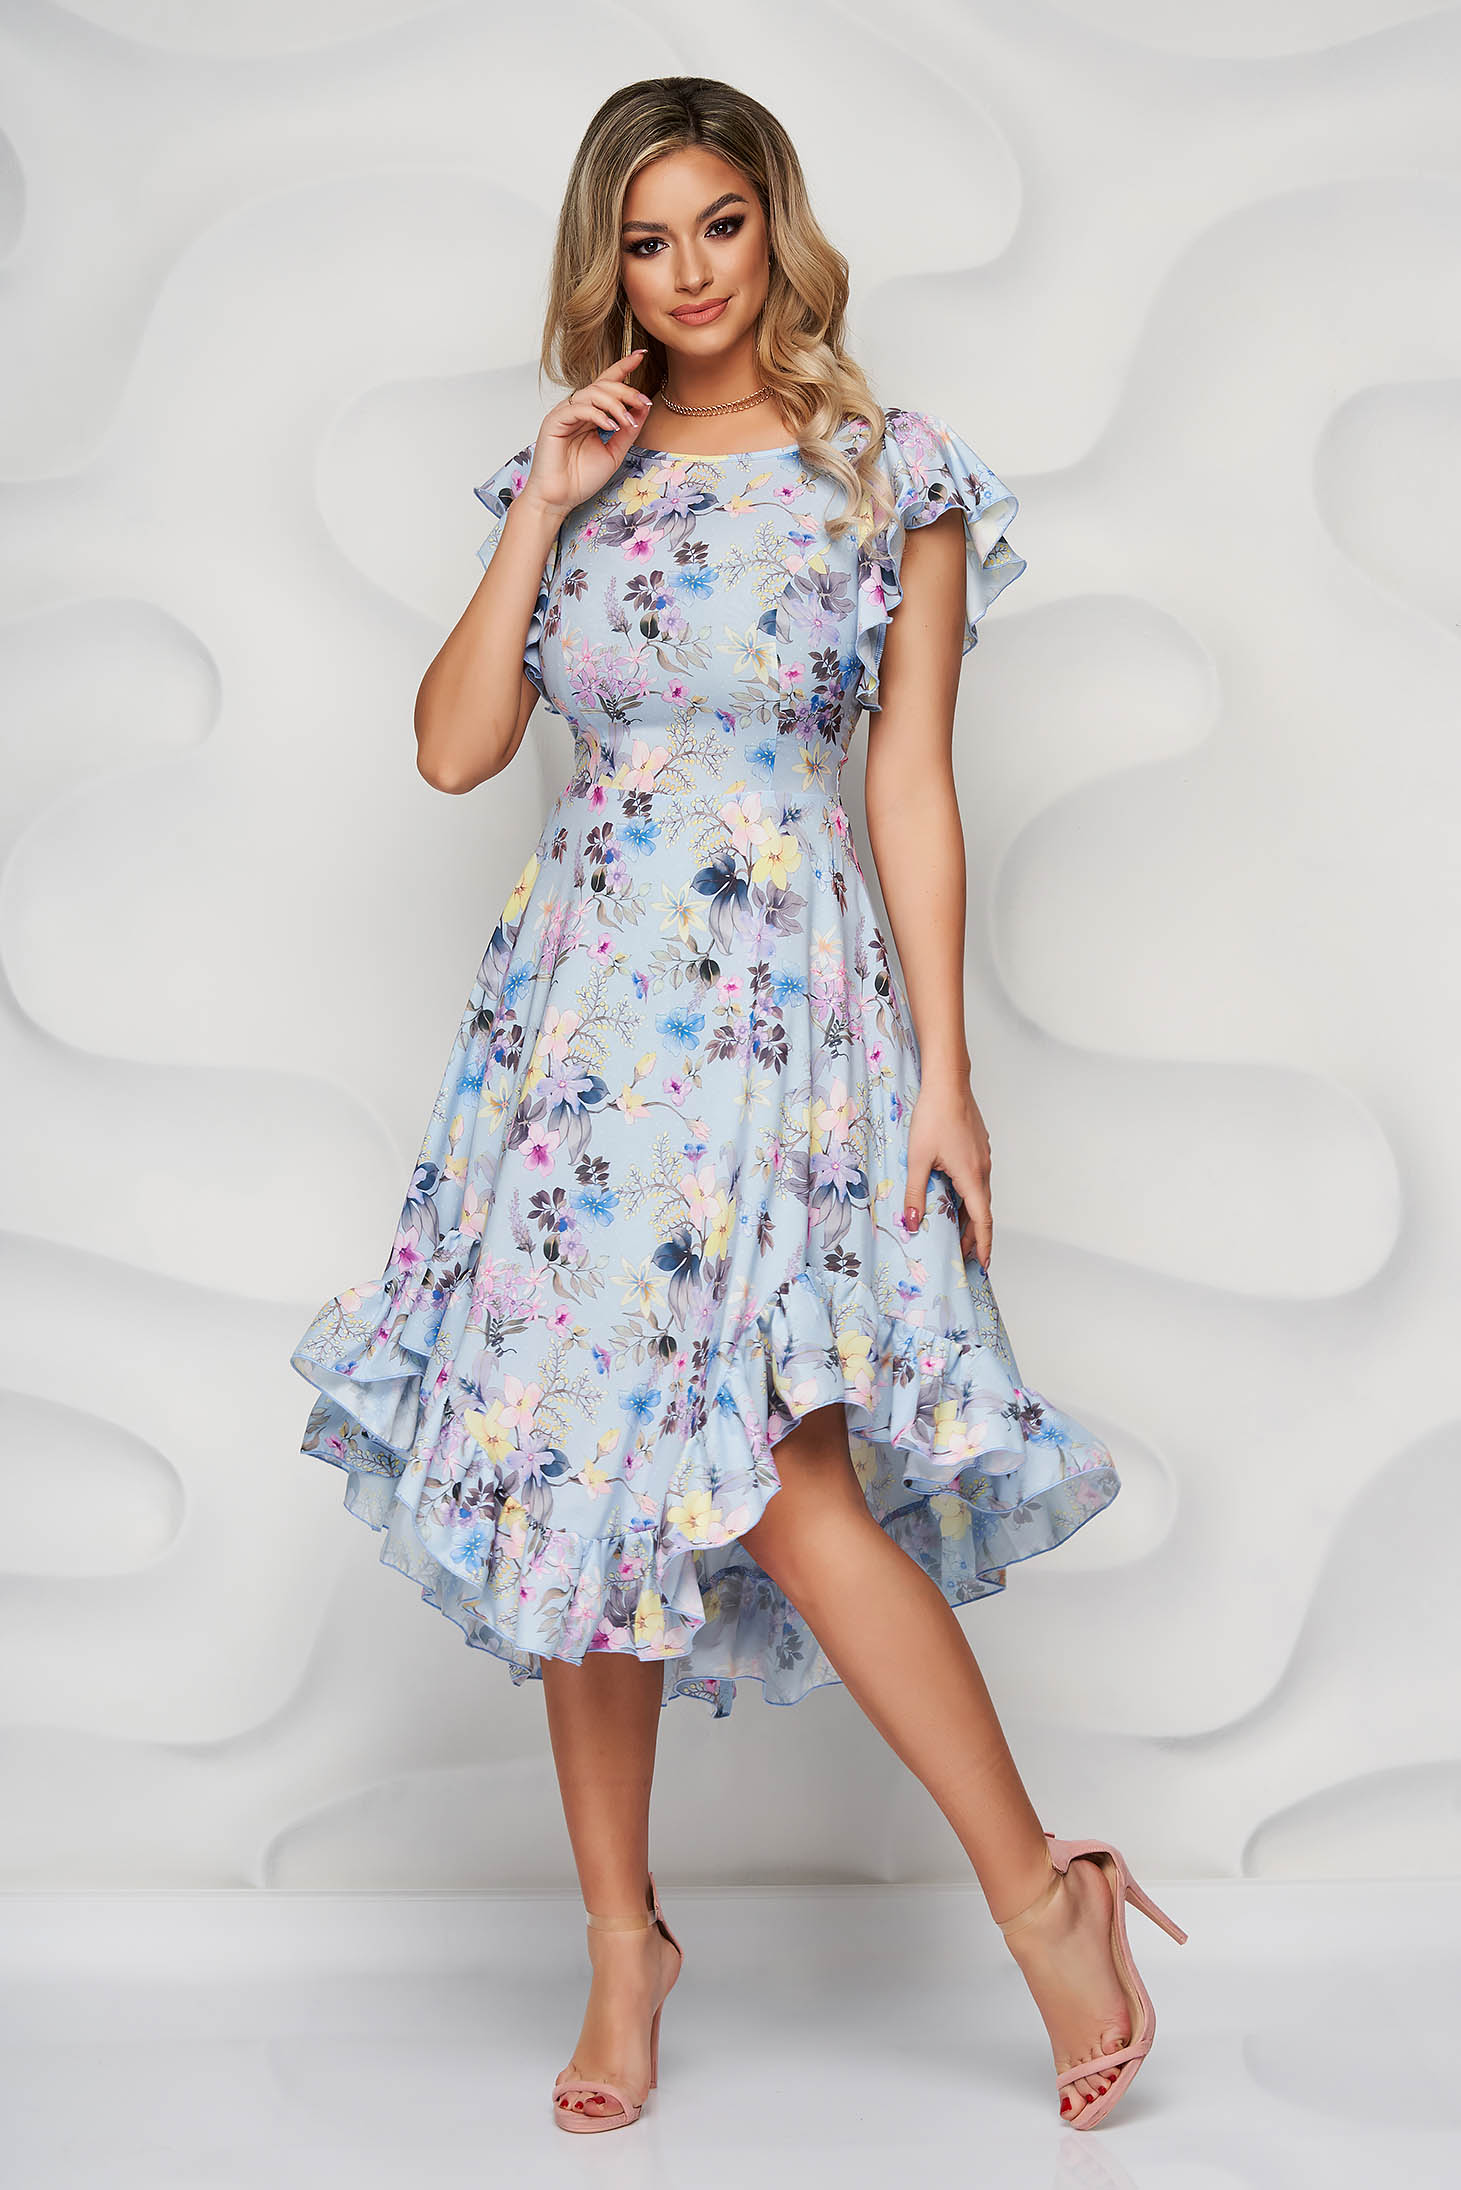 StarShinerS blue dress elegant midi cloche with ruffle details from soft fabric